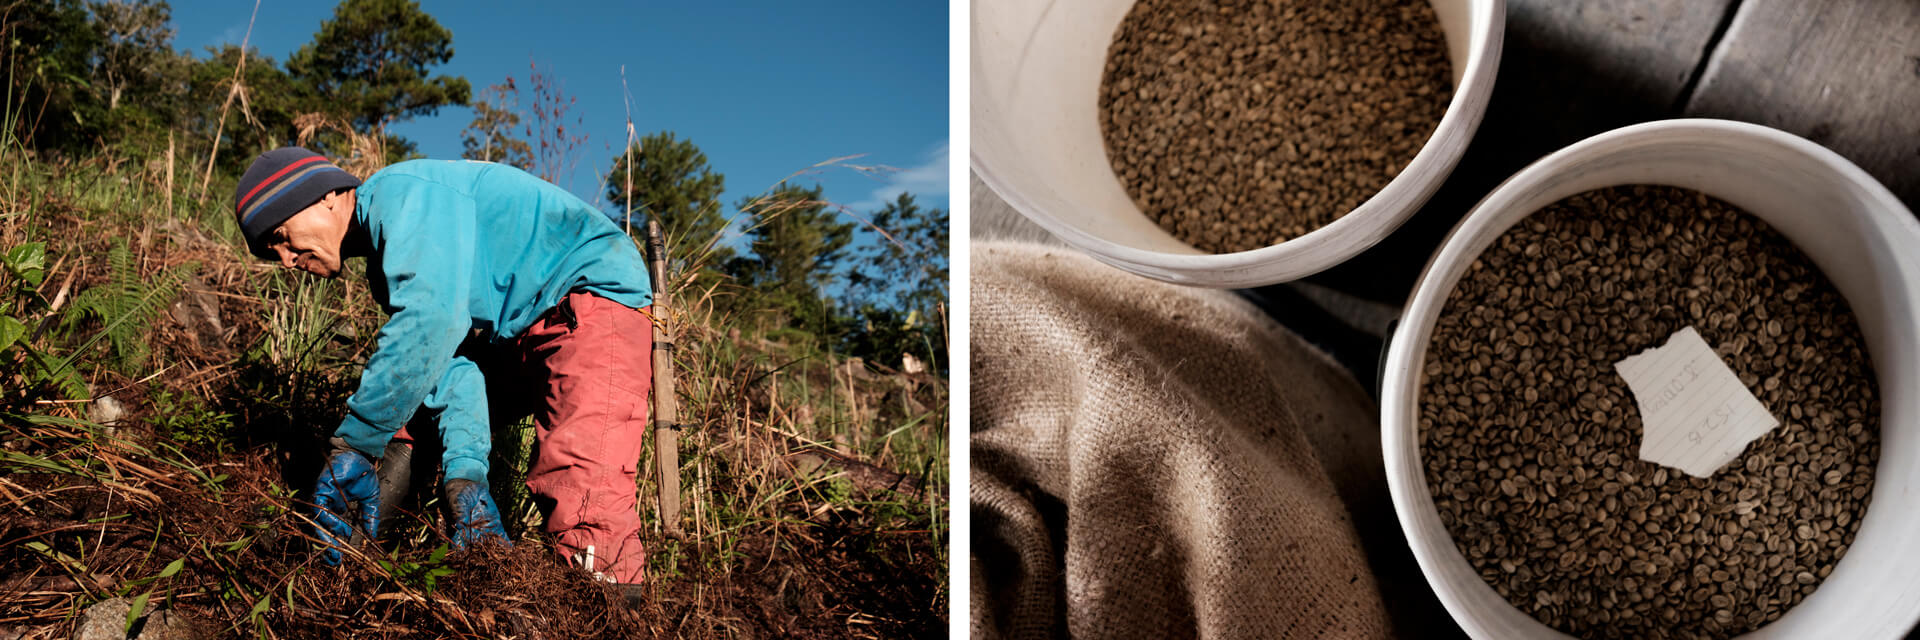 LEFT: Kalsada coffee farmer pulling the soil; RIGHT: 2 pails of freshly roasted coffee beans